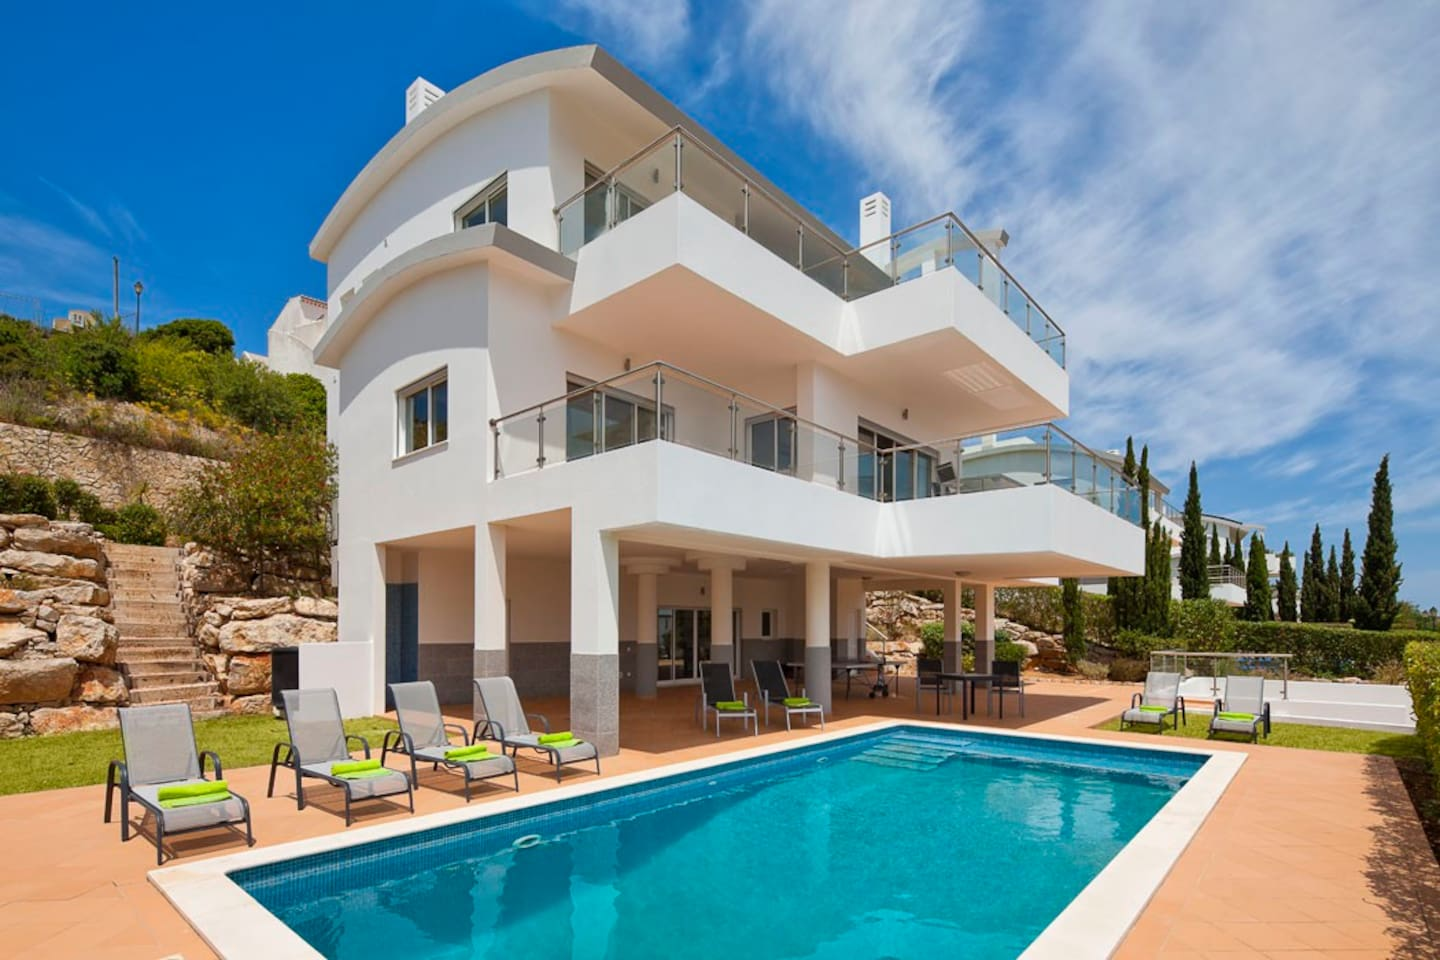 Spacious pool and garden area including large shaded area for relaxing